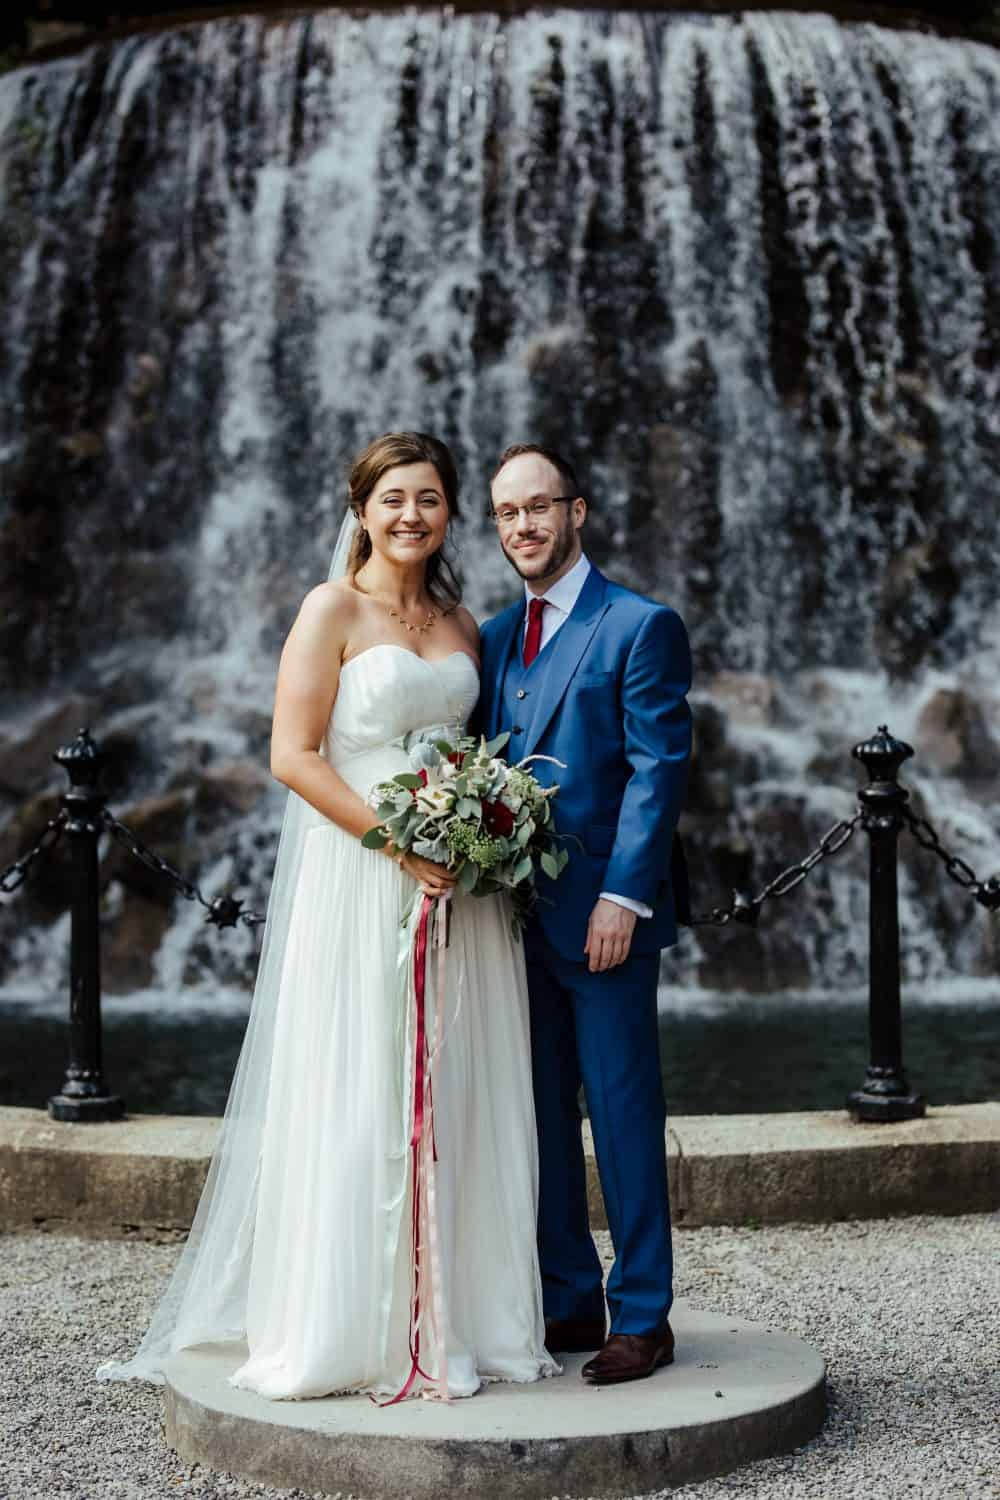 wedding photos at iveagh garden dublin at the waterfall